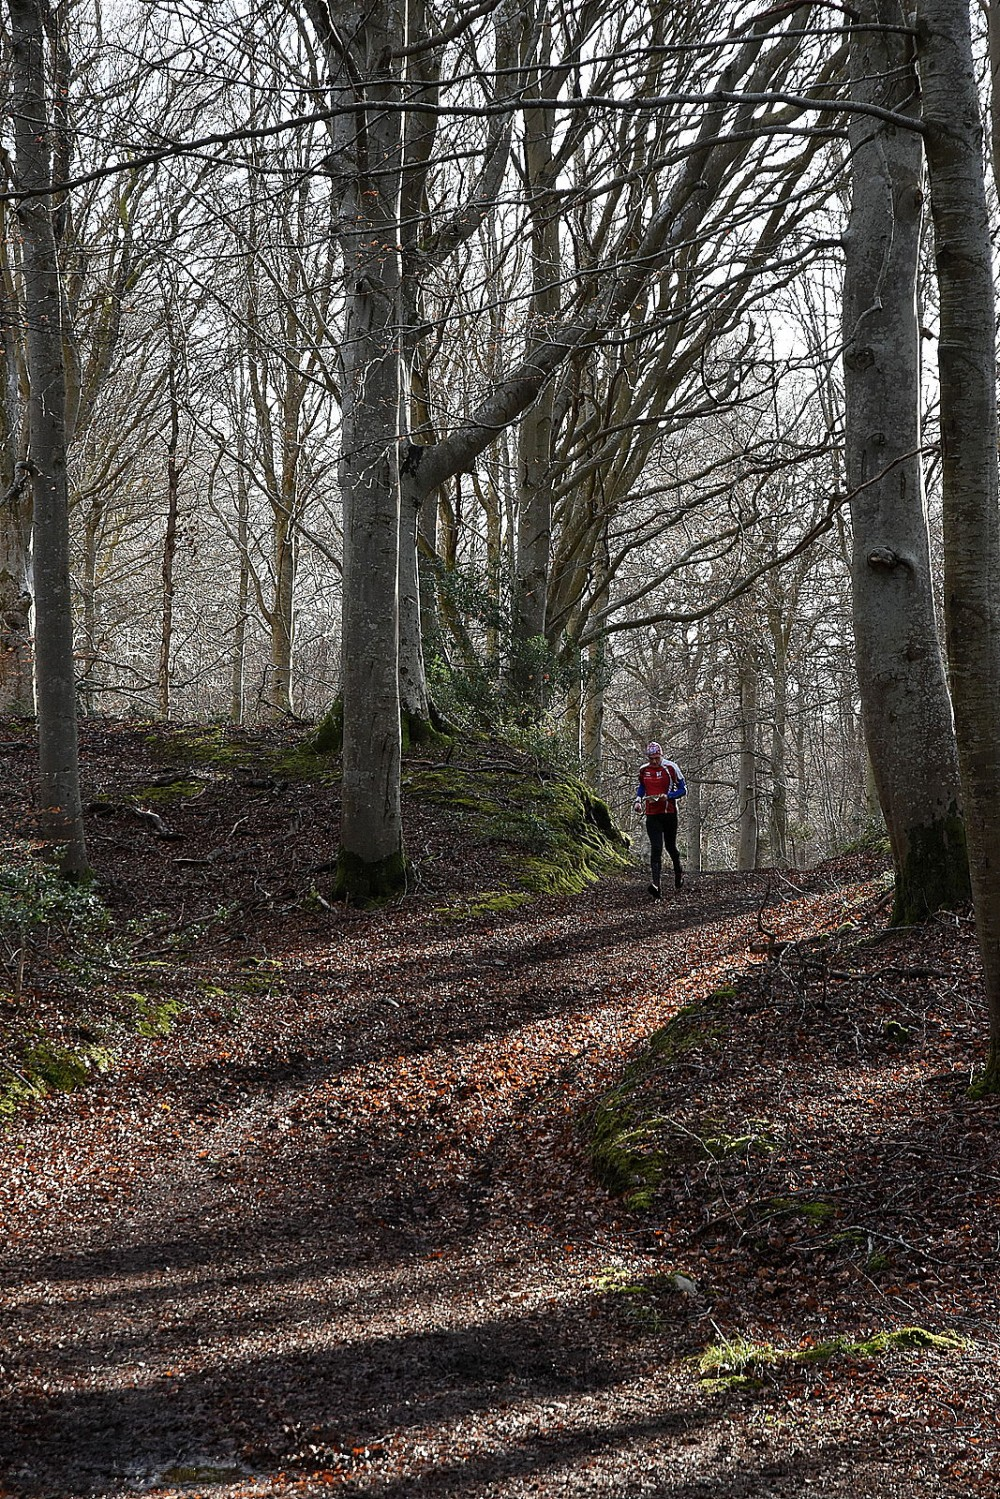 Track through beech forest